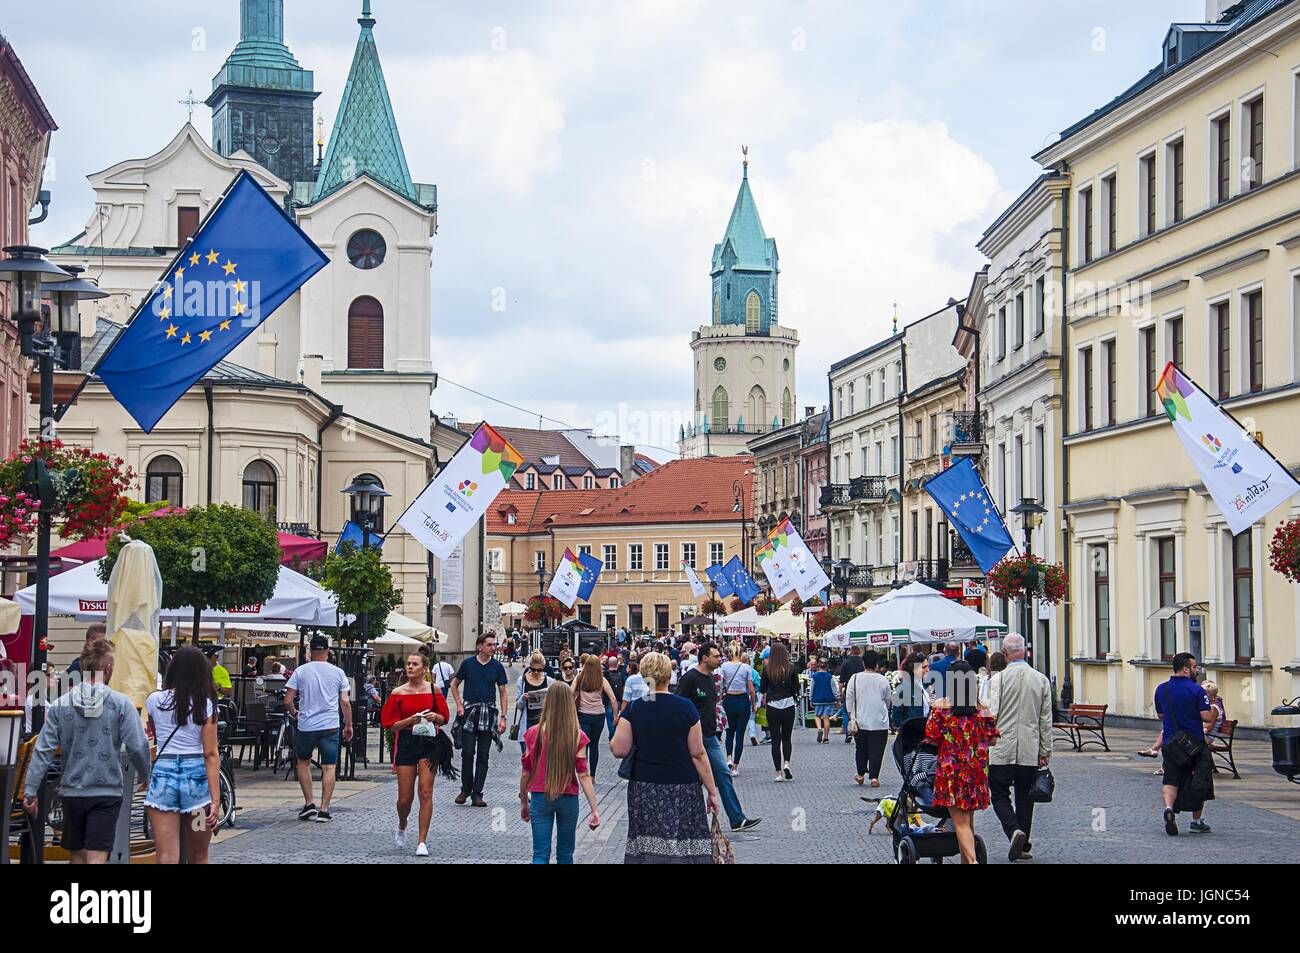 LUBLIN, POLAND- 07 july 2017- city center with UE flags - Stock Image